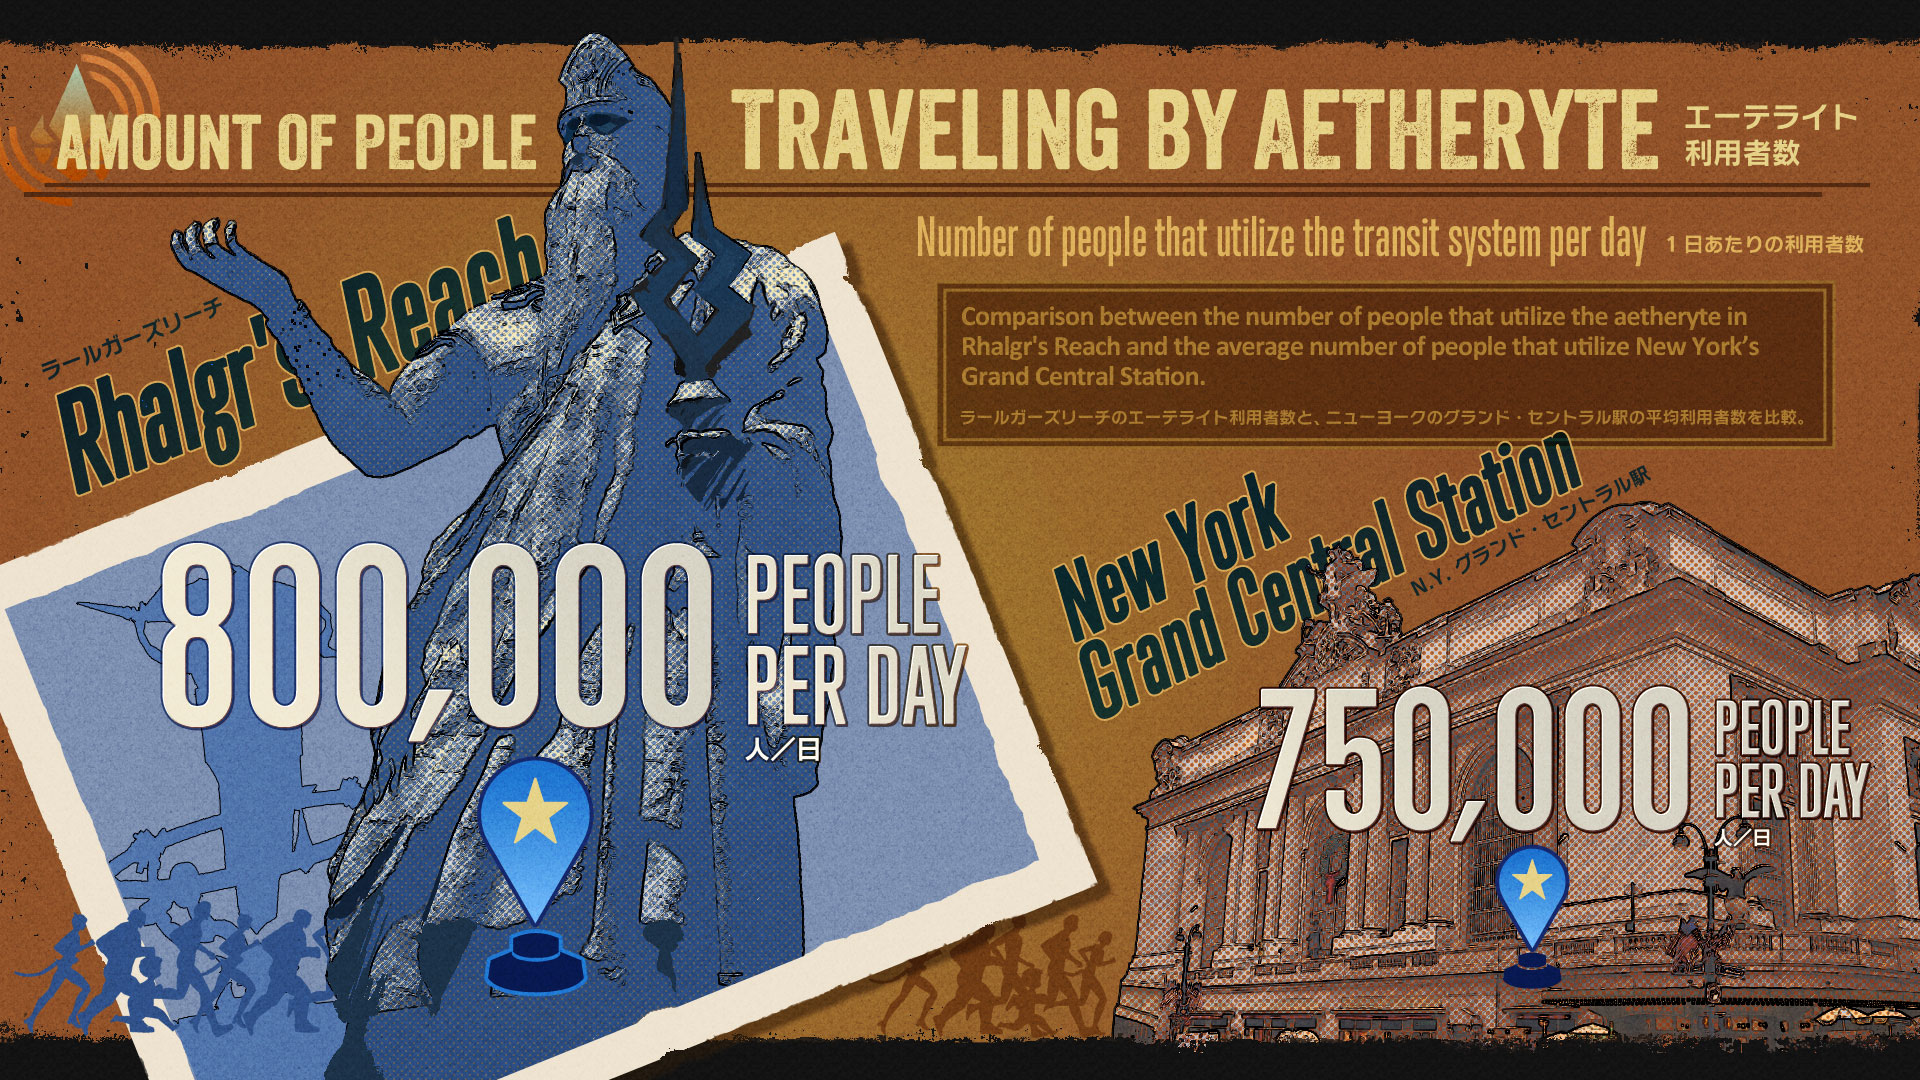 Amount of people traveling by aetheryte